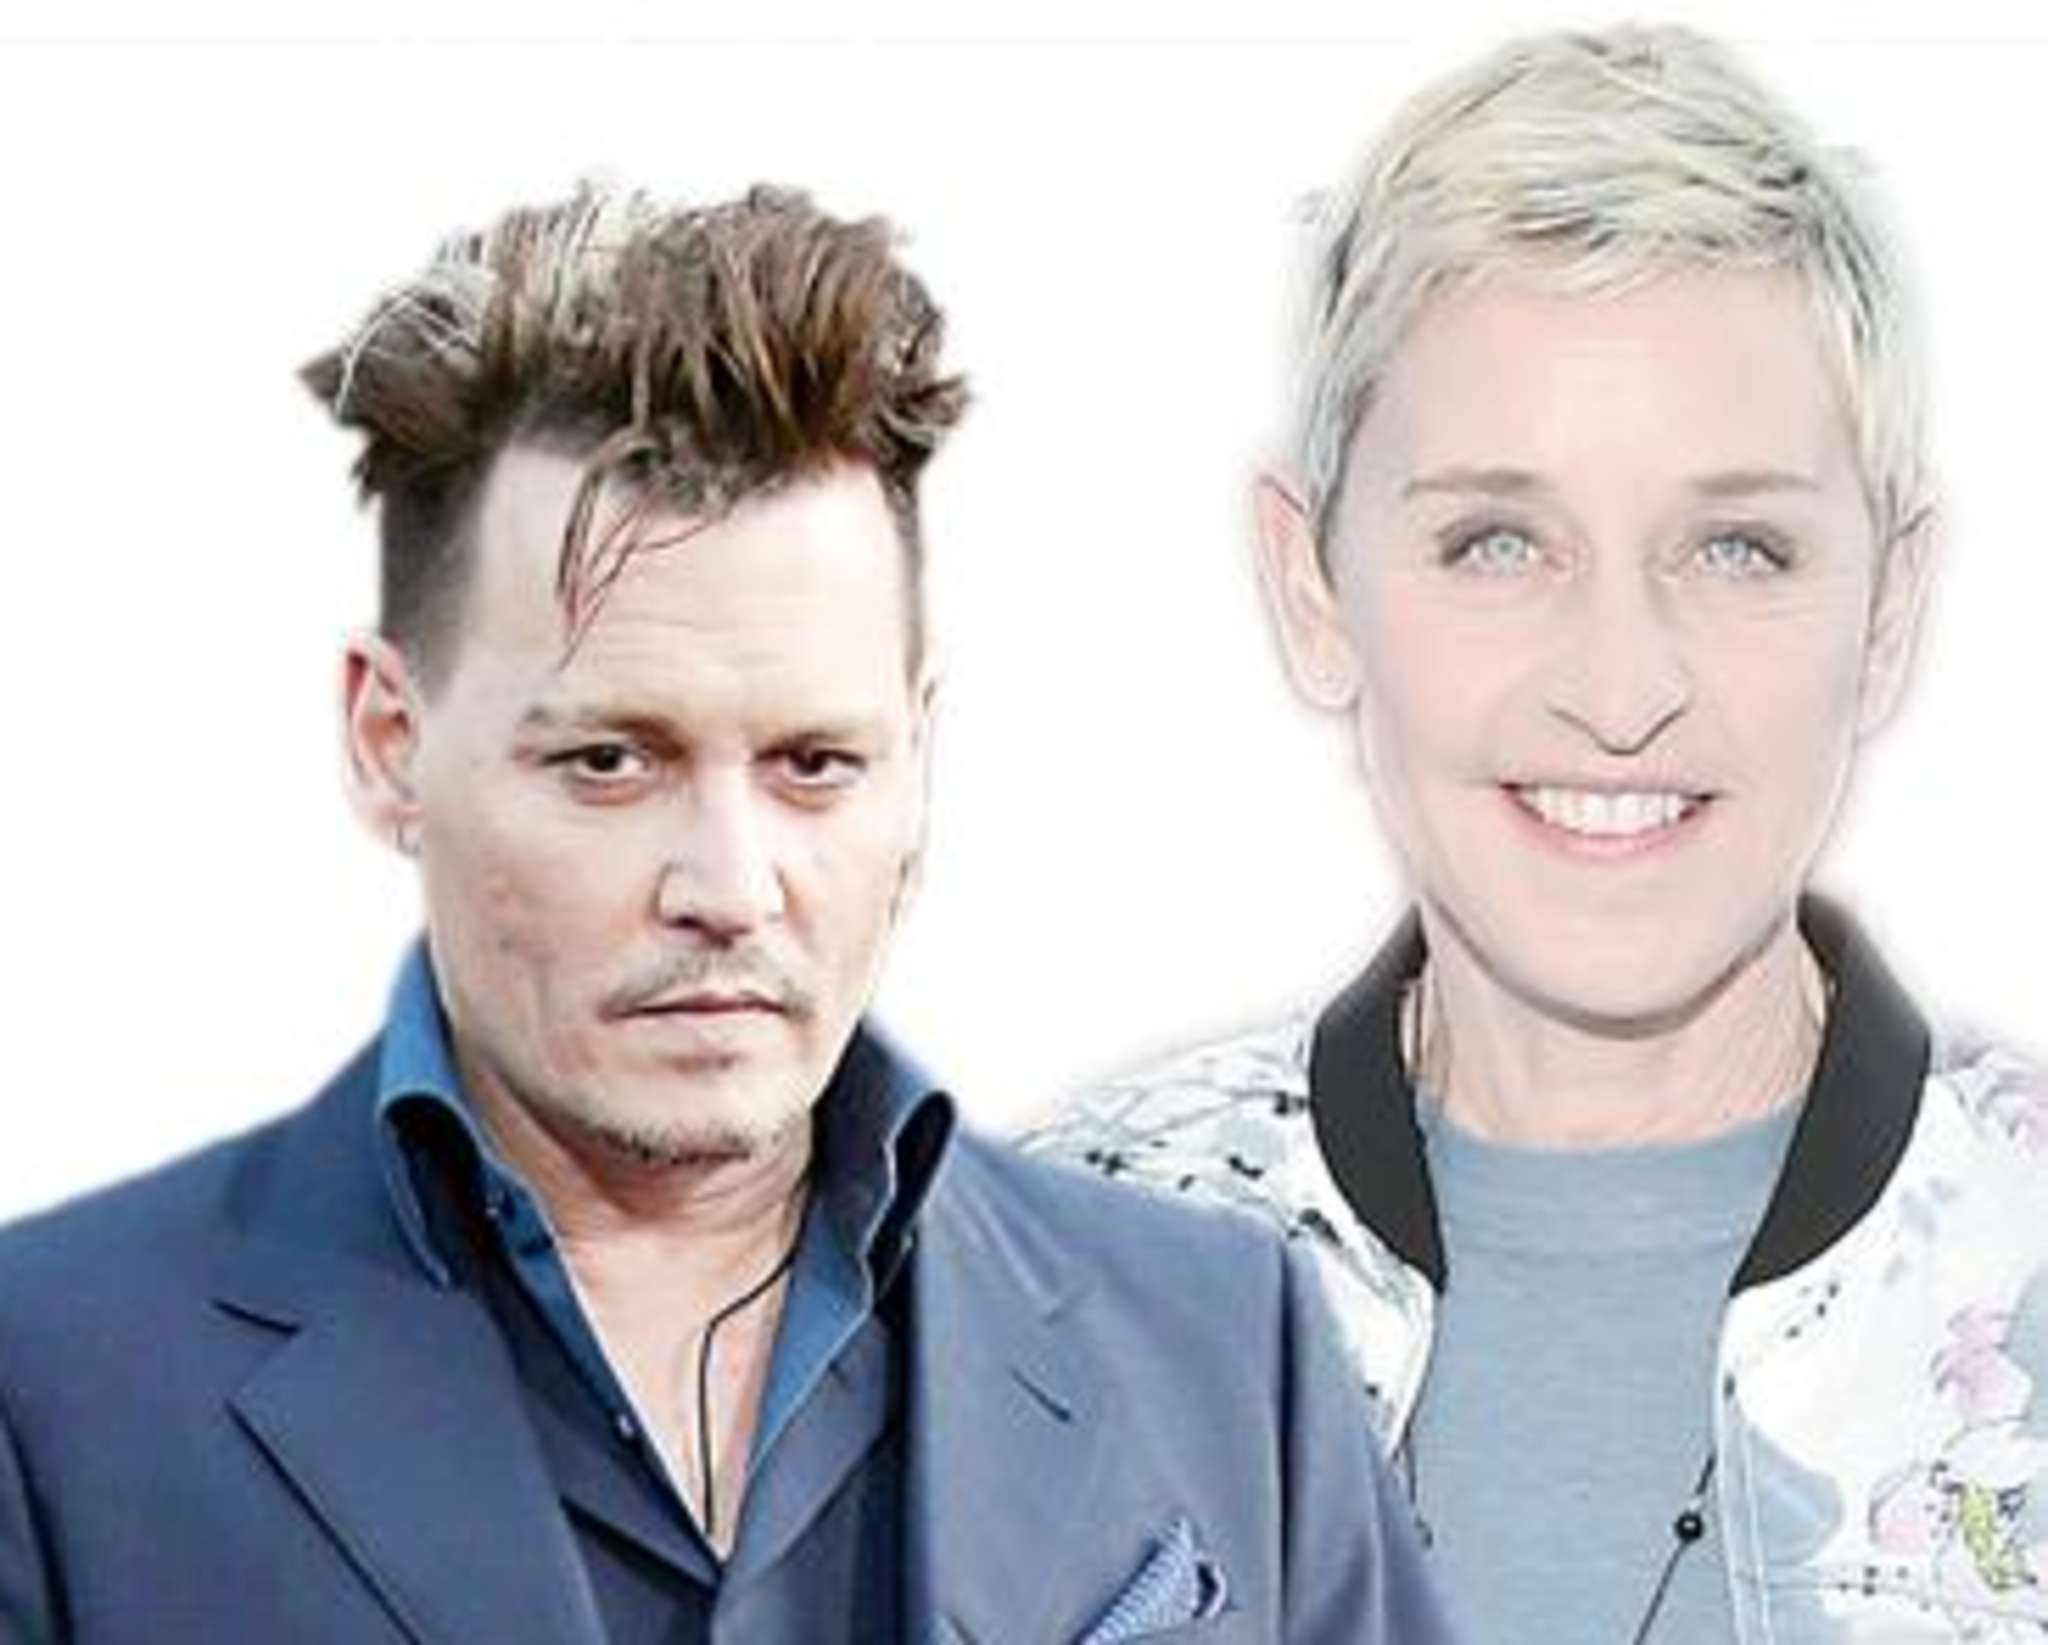 Depp: Divorce done DeGeneres: Runs from racism